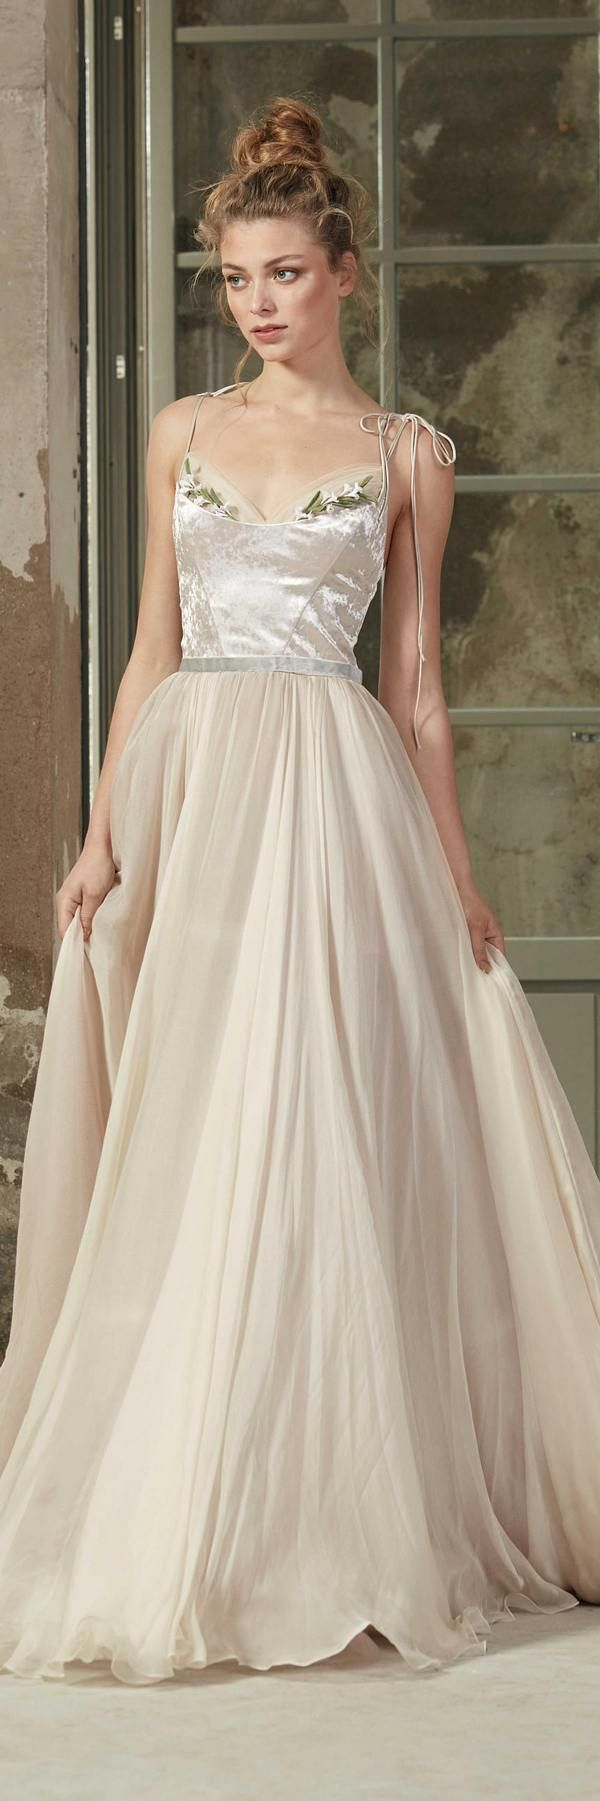 Rara Avis 2018 Wedding Dresses DEIA / http://www.deerpearlflowers.com/rara-avis-2018-wedding-dresses/